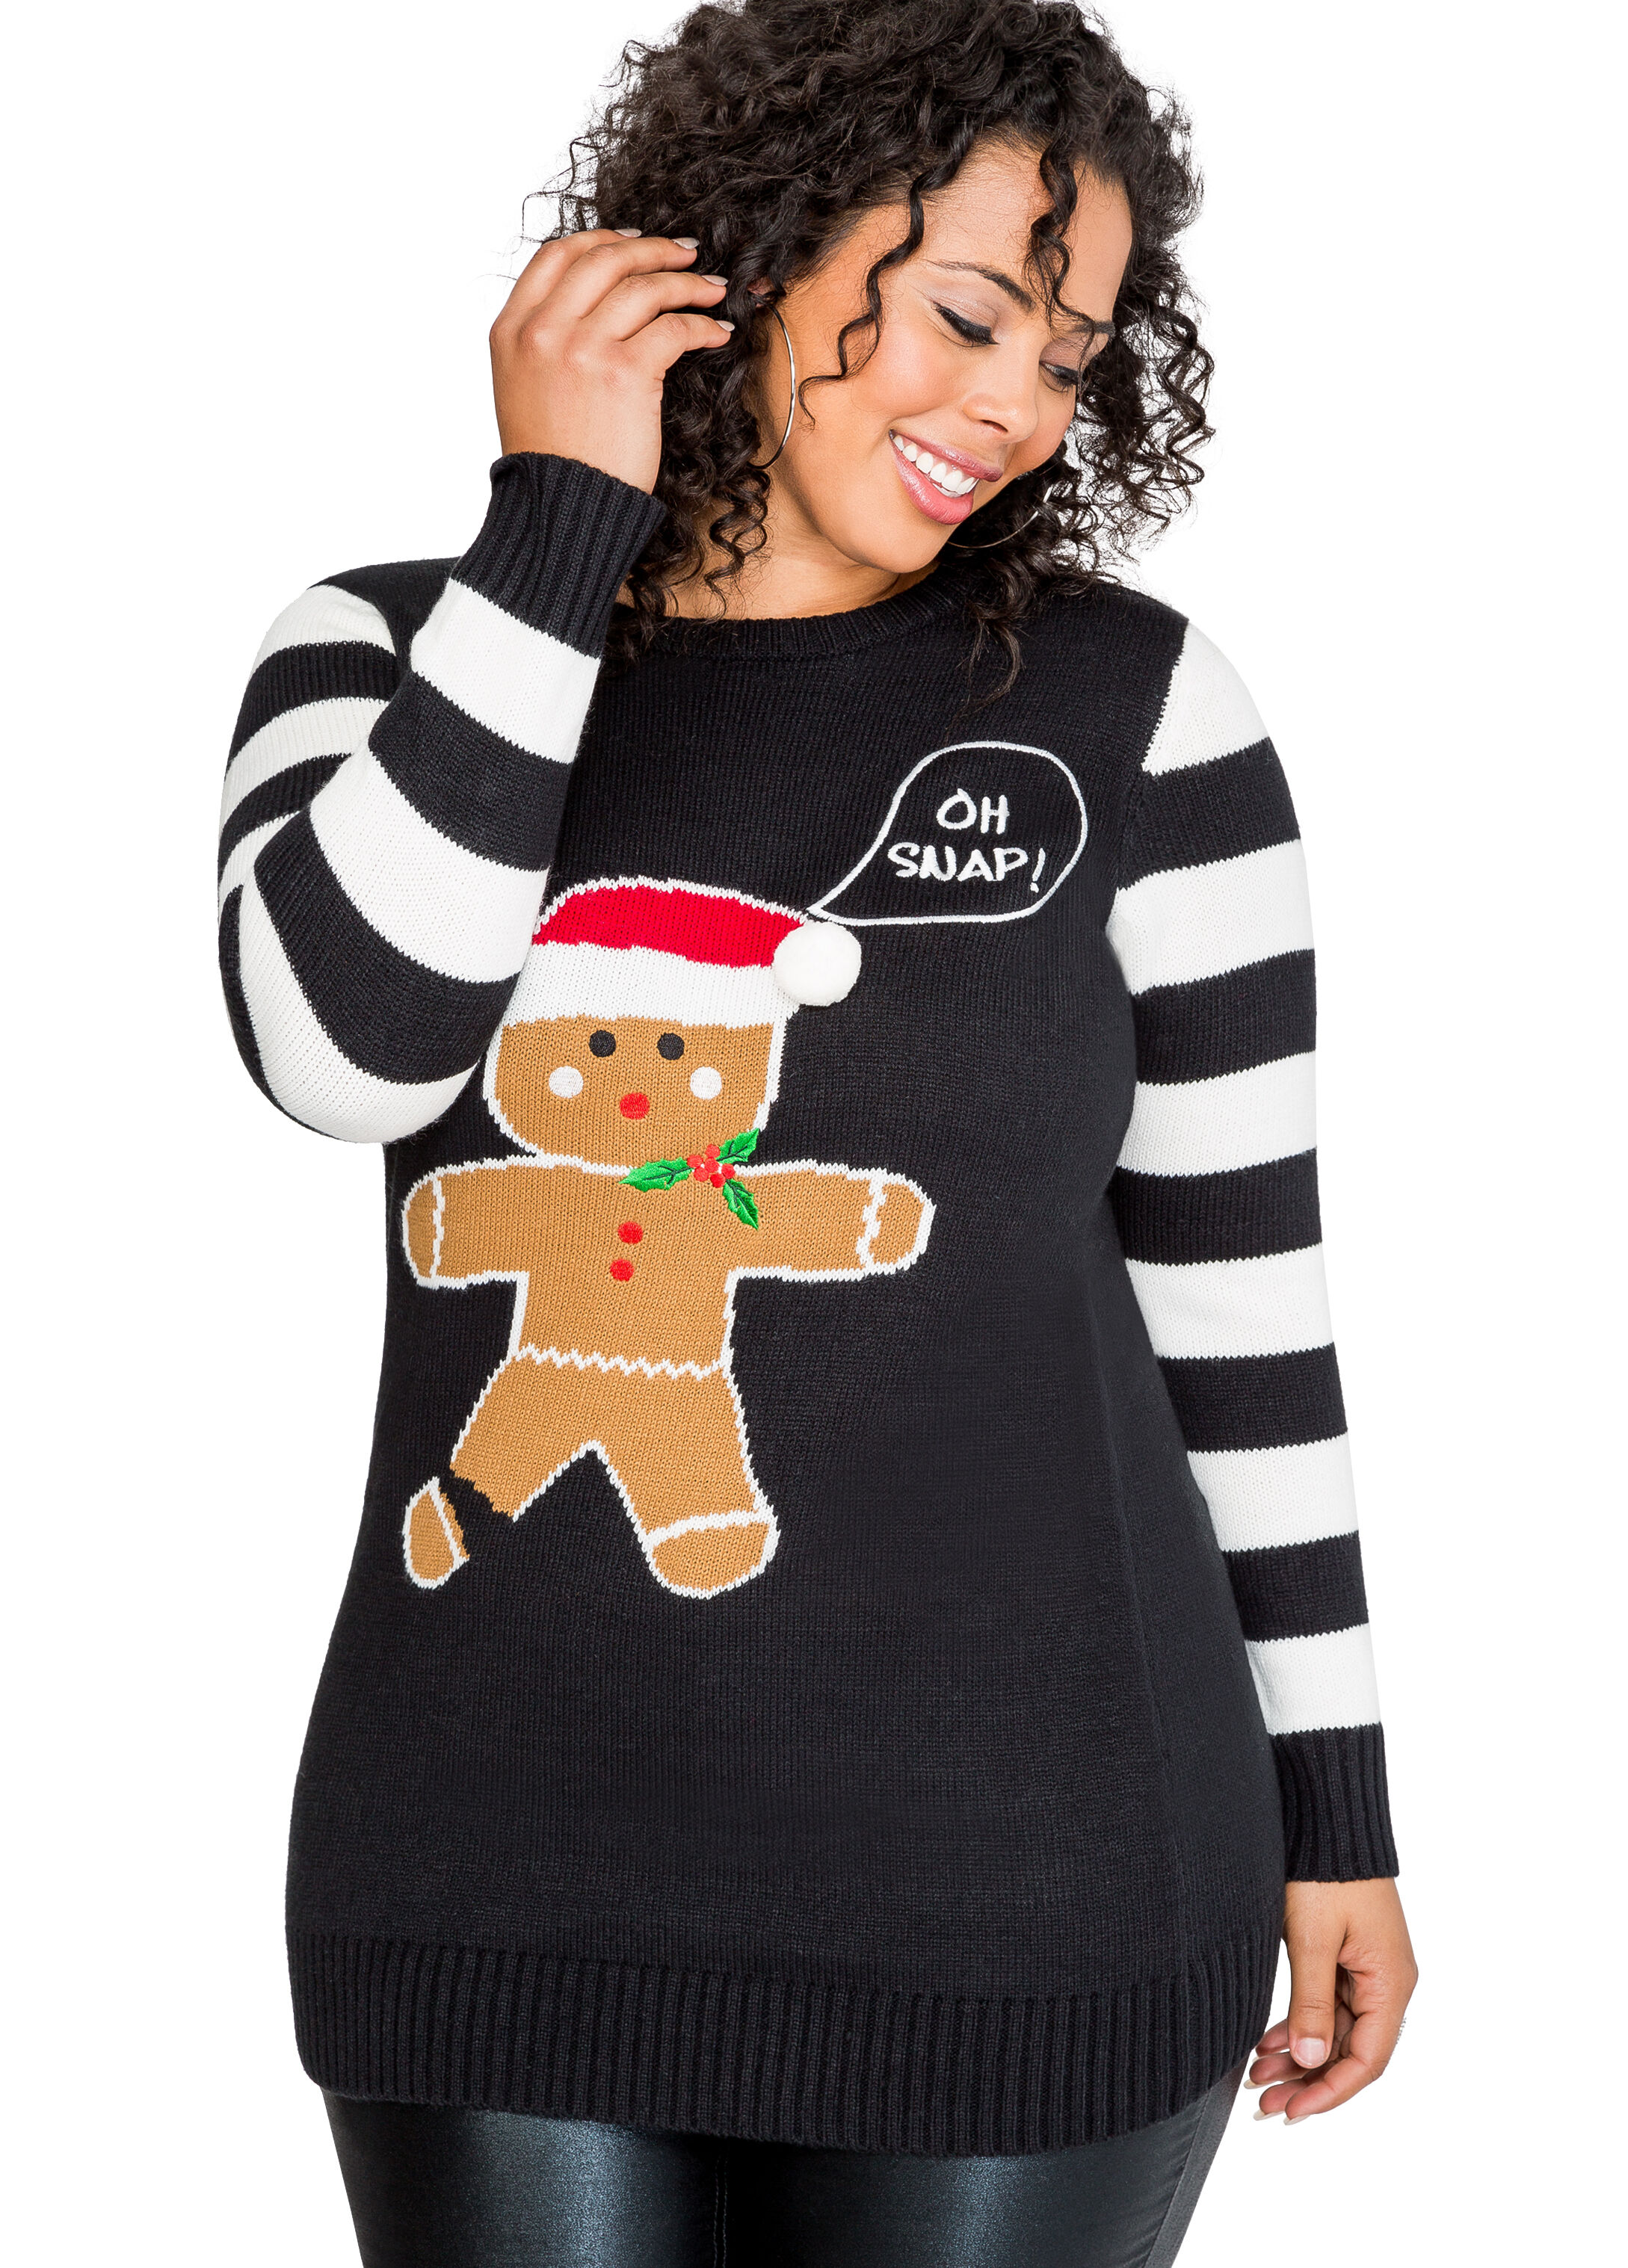 Oh Snap! Holiday Sweater